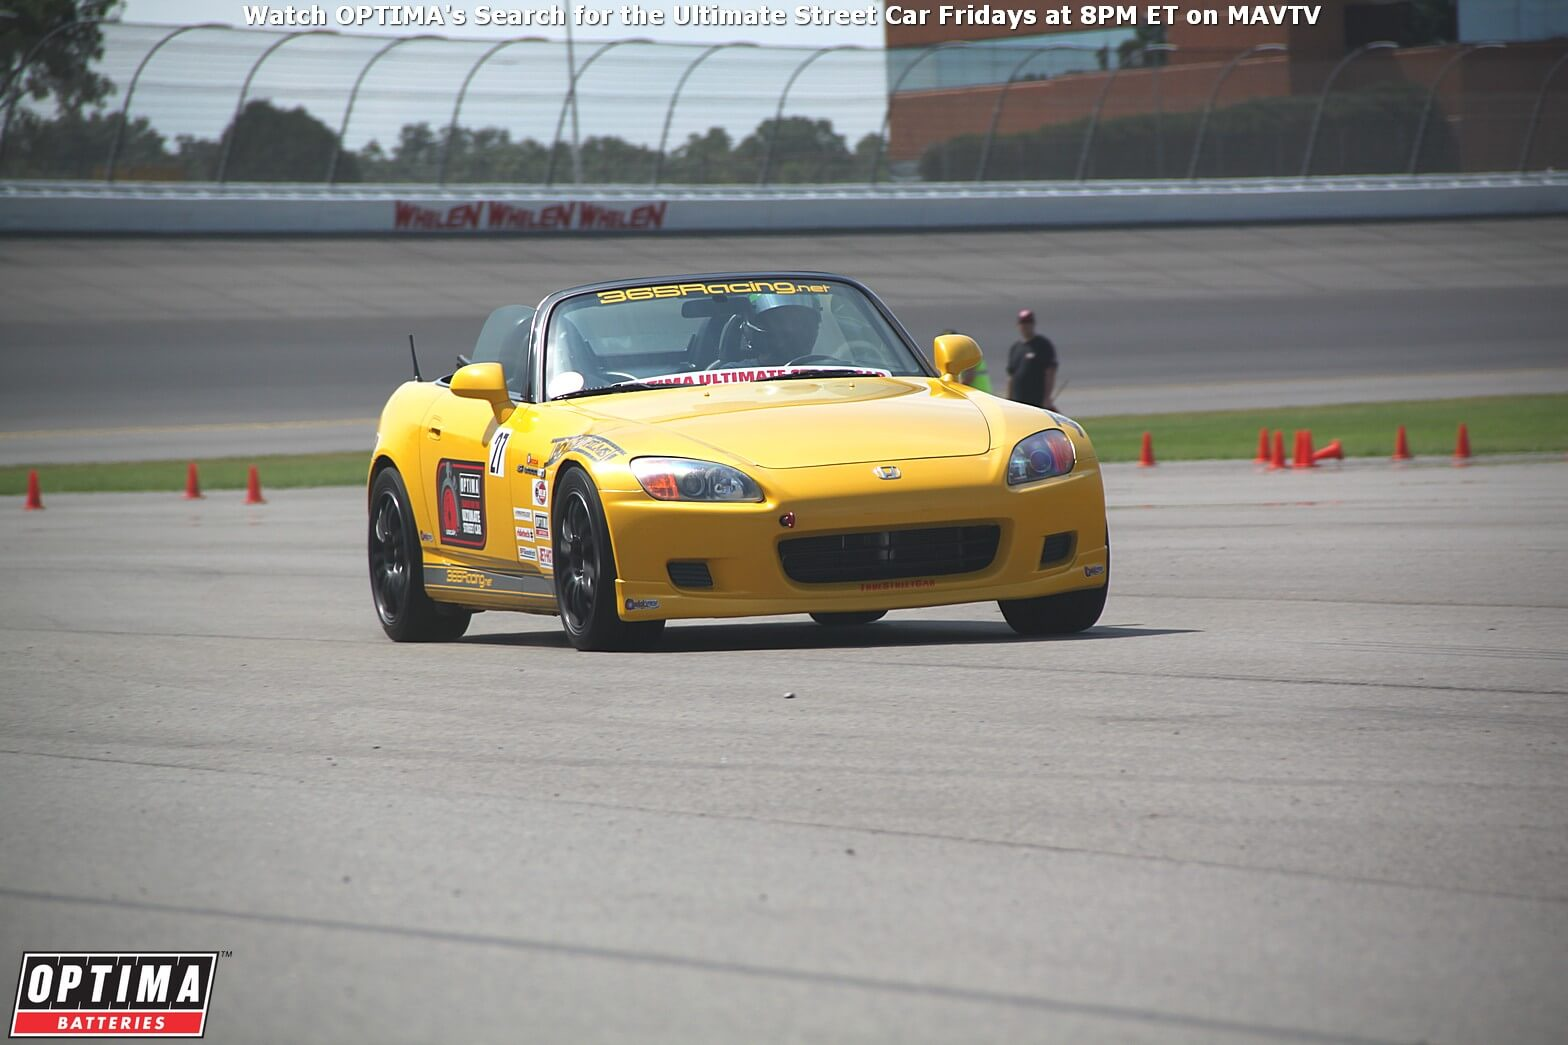 Andy-Smedegard-2001-Honda-S2000-USCA-Michigan-2014_124